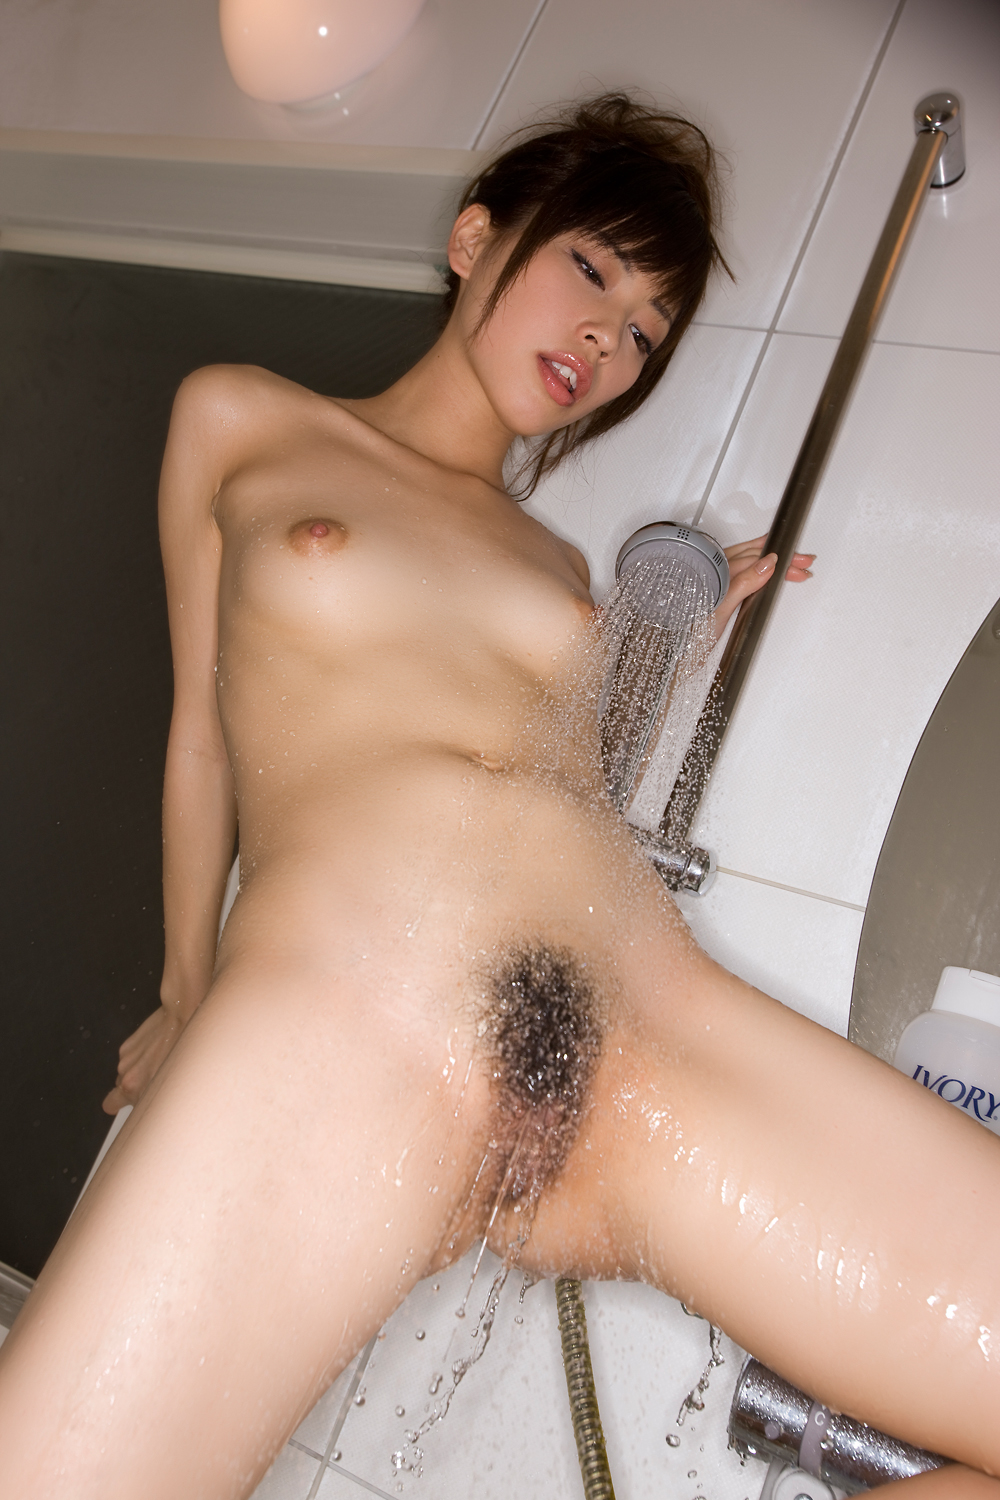 Hot asian chick takes a shower